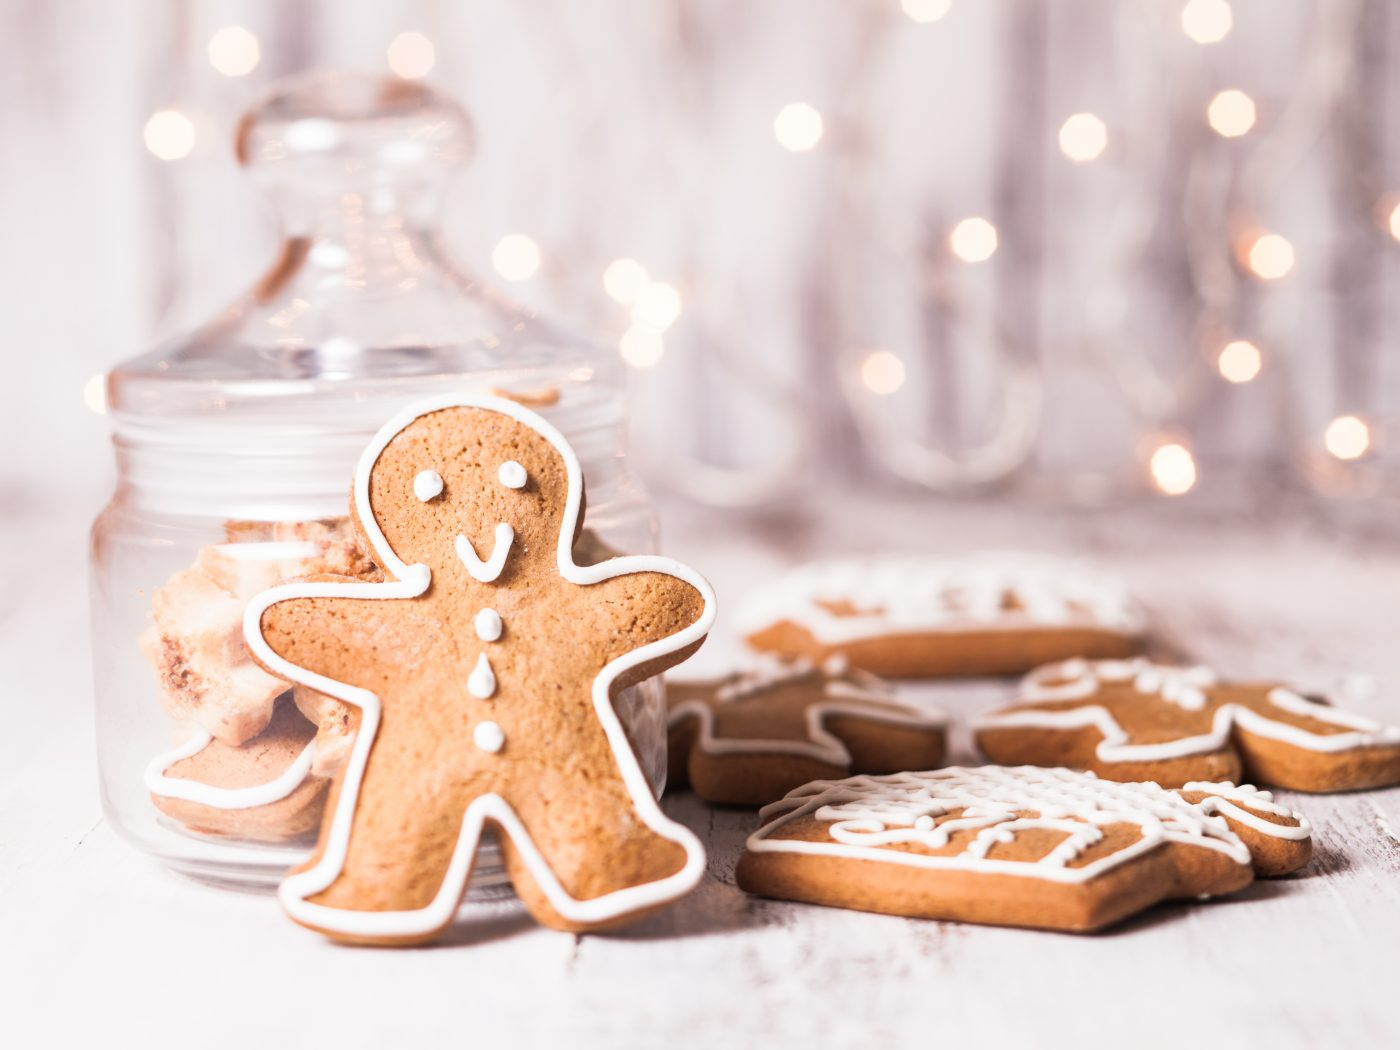 Gingerbread cookies on a table and Christmas lights on background